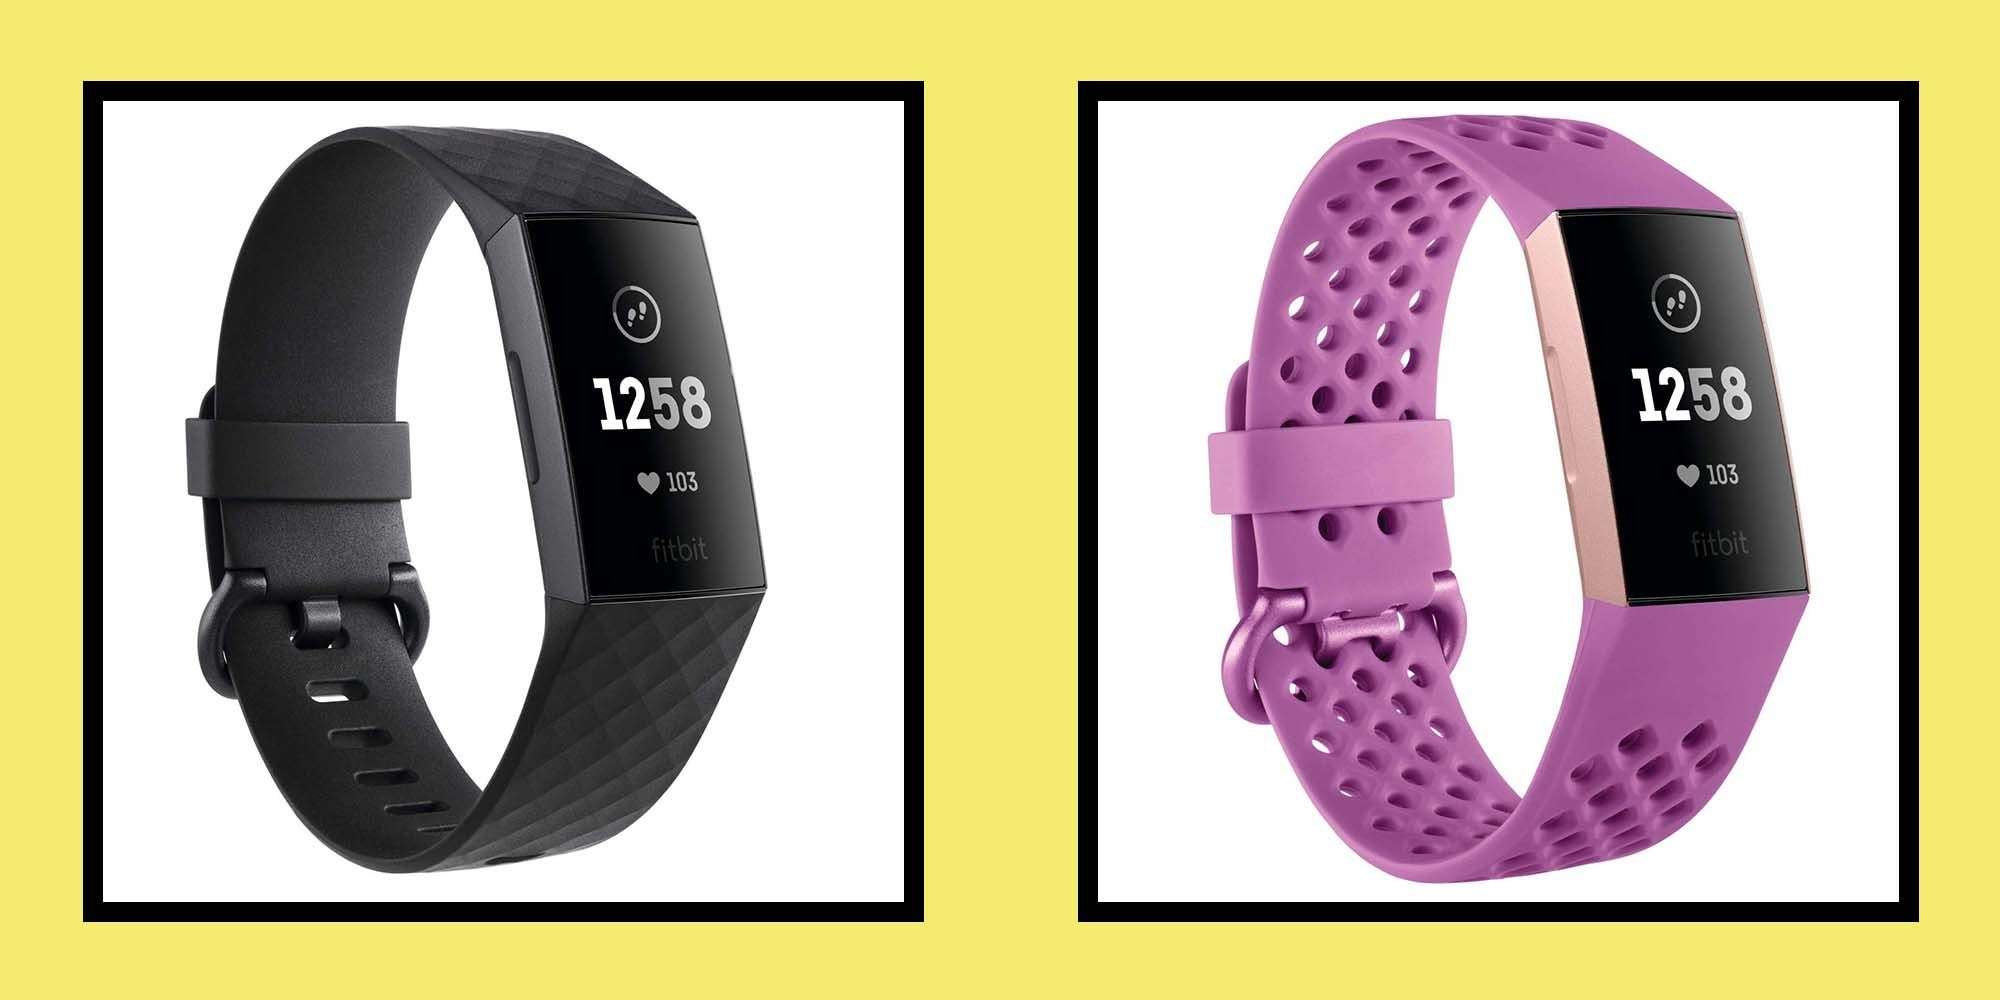 21 seriously cheap running watches in the Amazon Prime Day sales